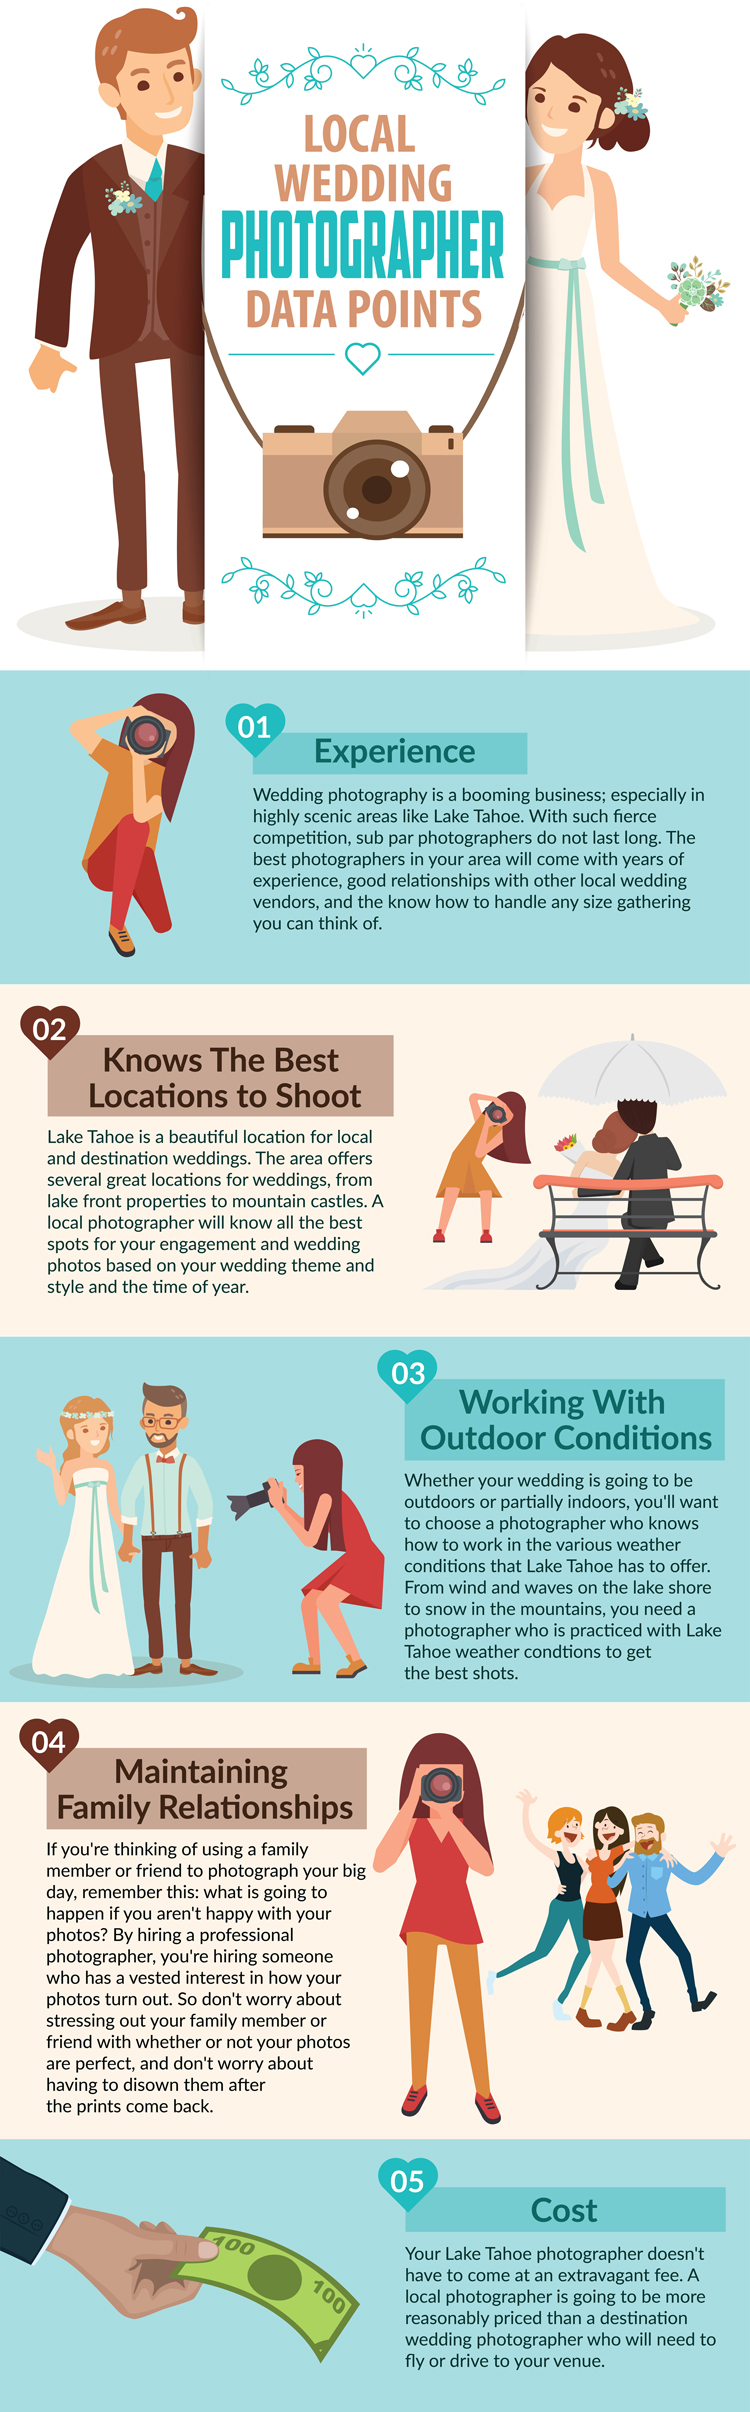 Reasons to Go Local When Choosing a Wedding Photographer